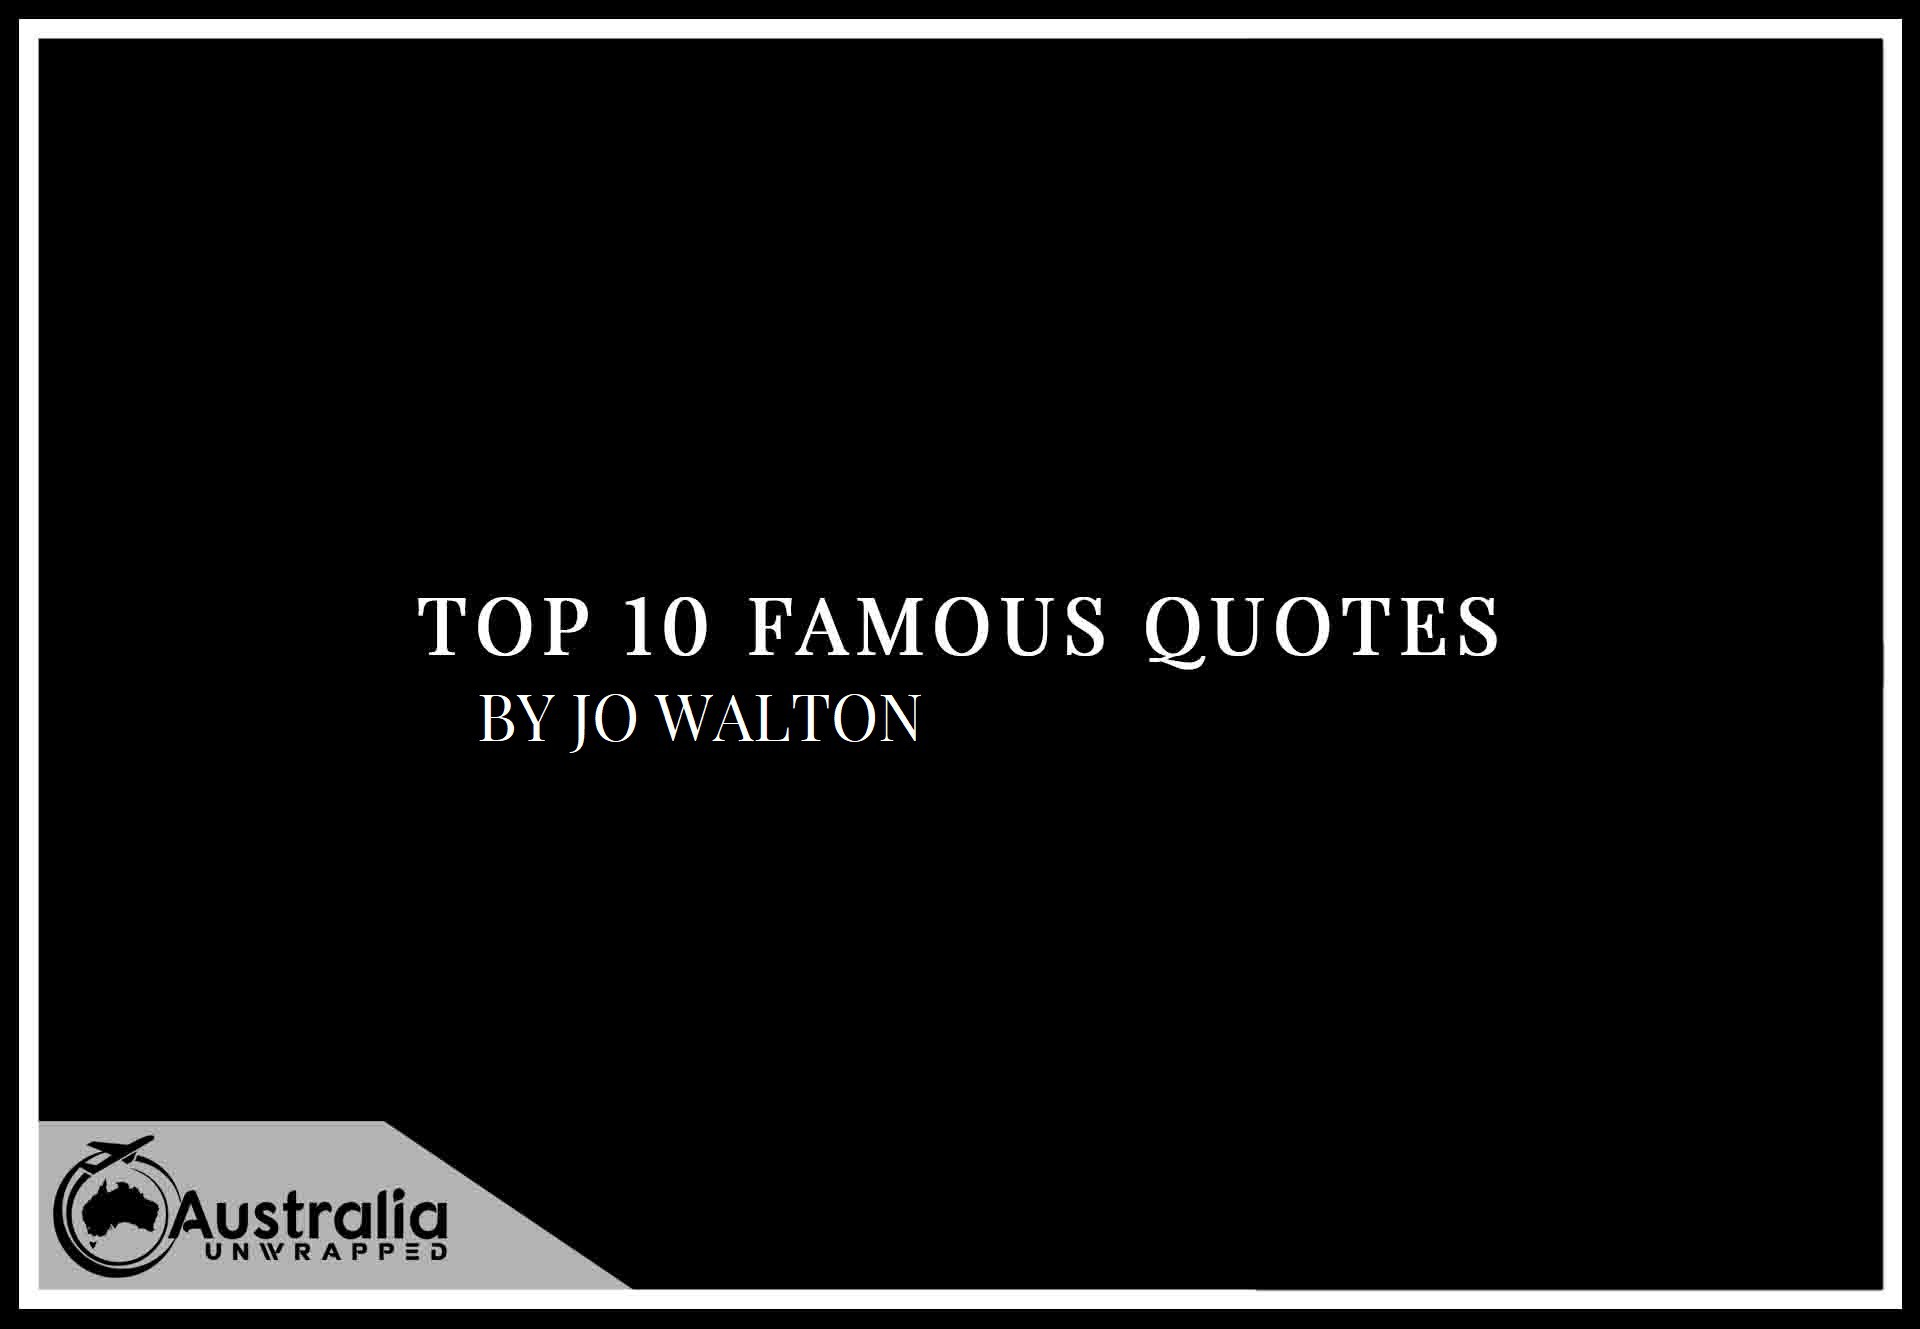 Top 10 Famous Quotes by Author Jo Walton